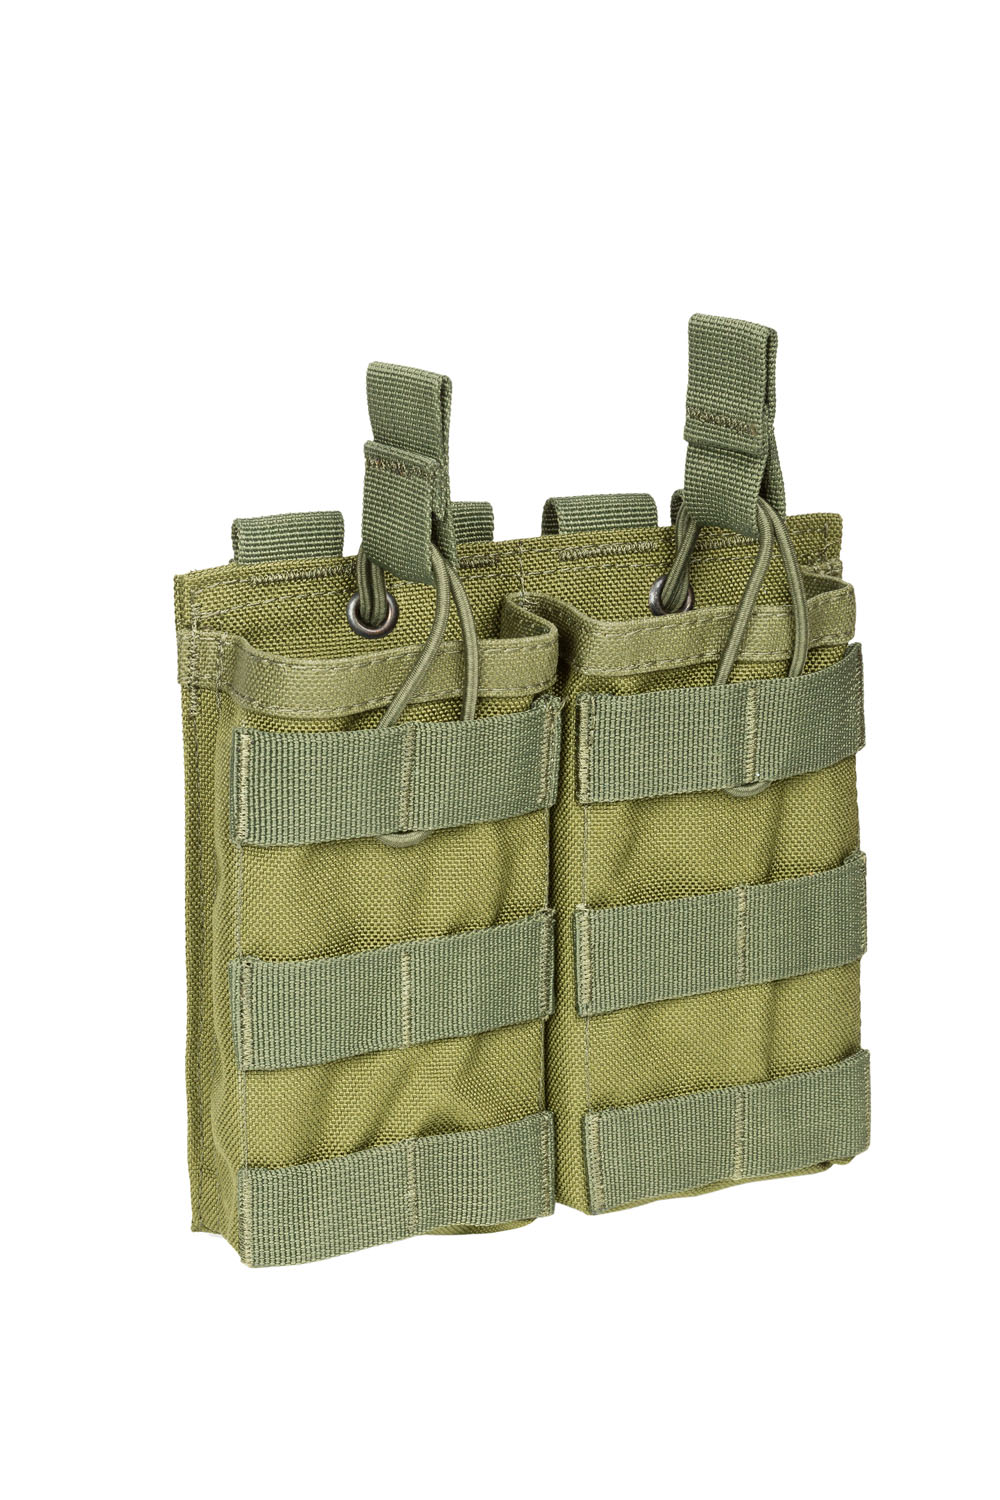 Double AK/AR-15 open-top mag pouch